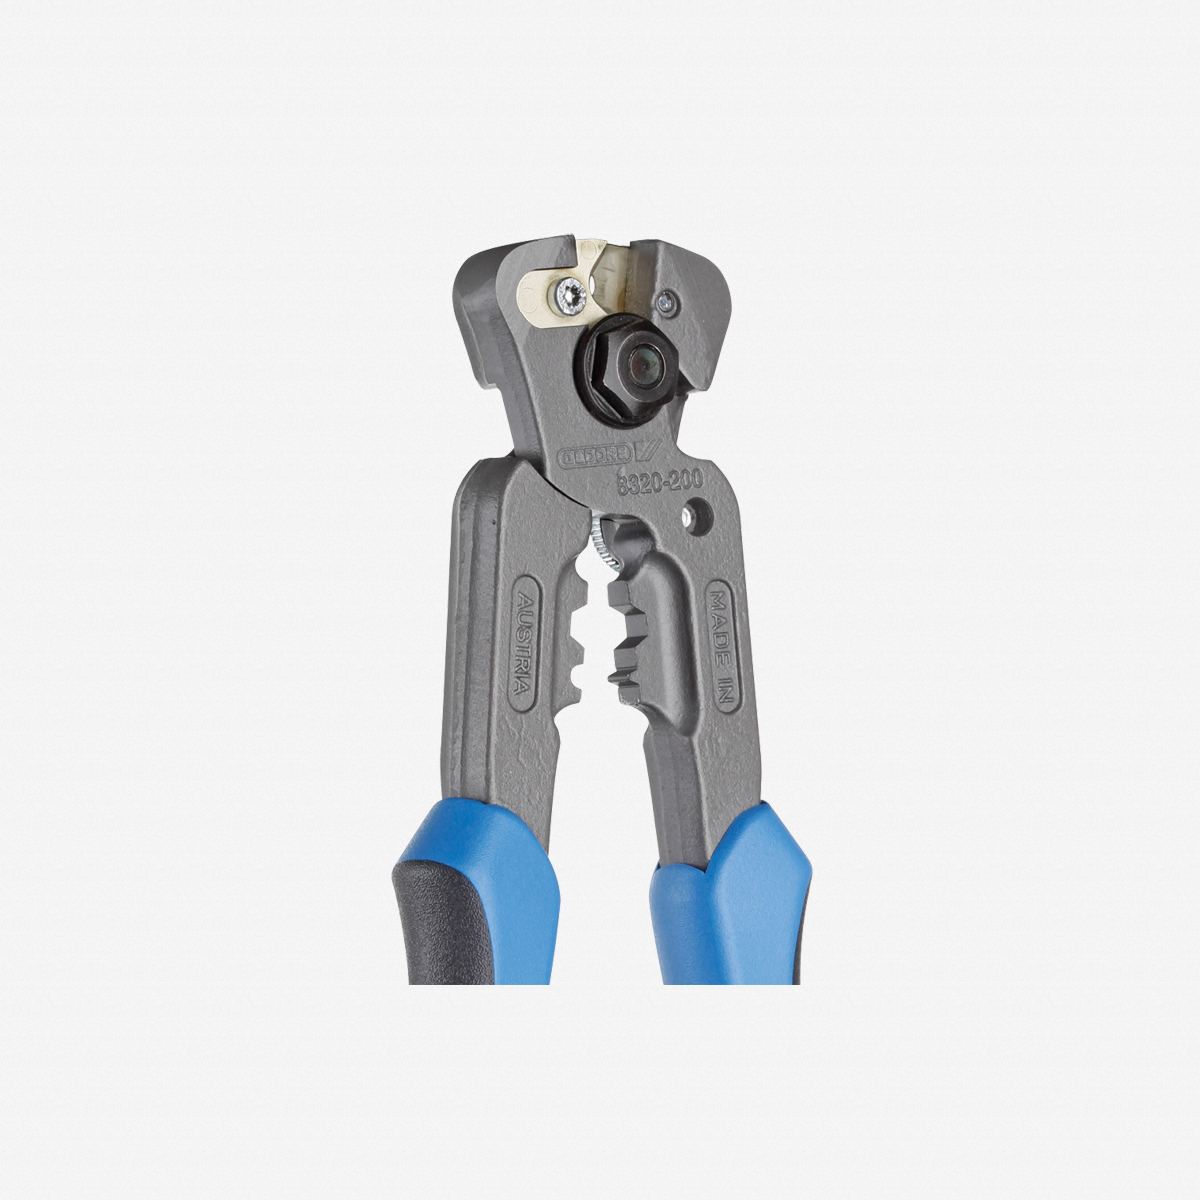 Gedore 8320-200 JL Wire rope cutter - KC Tool